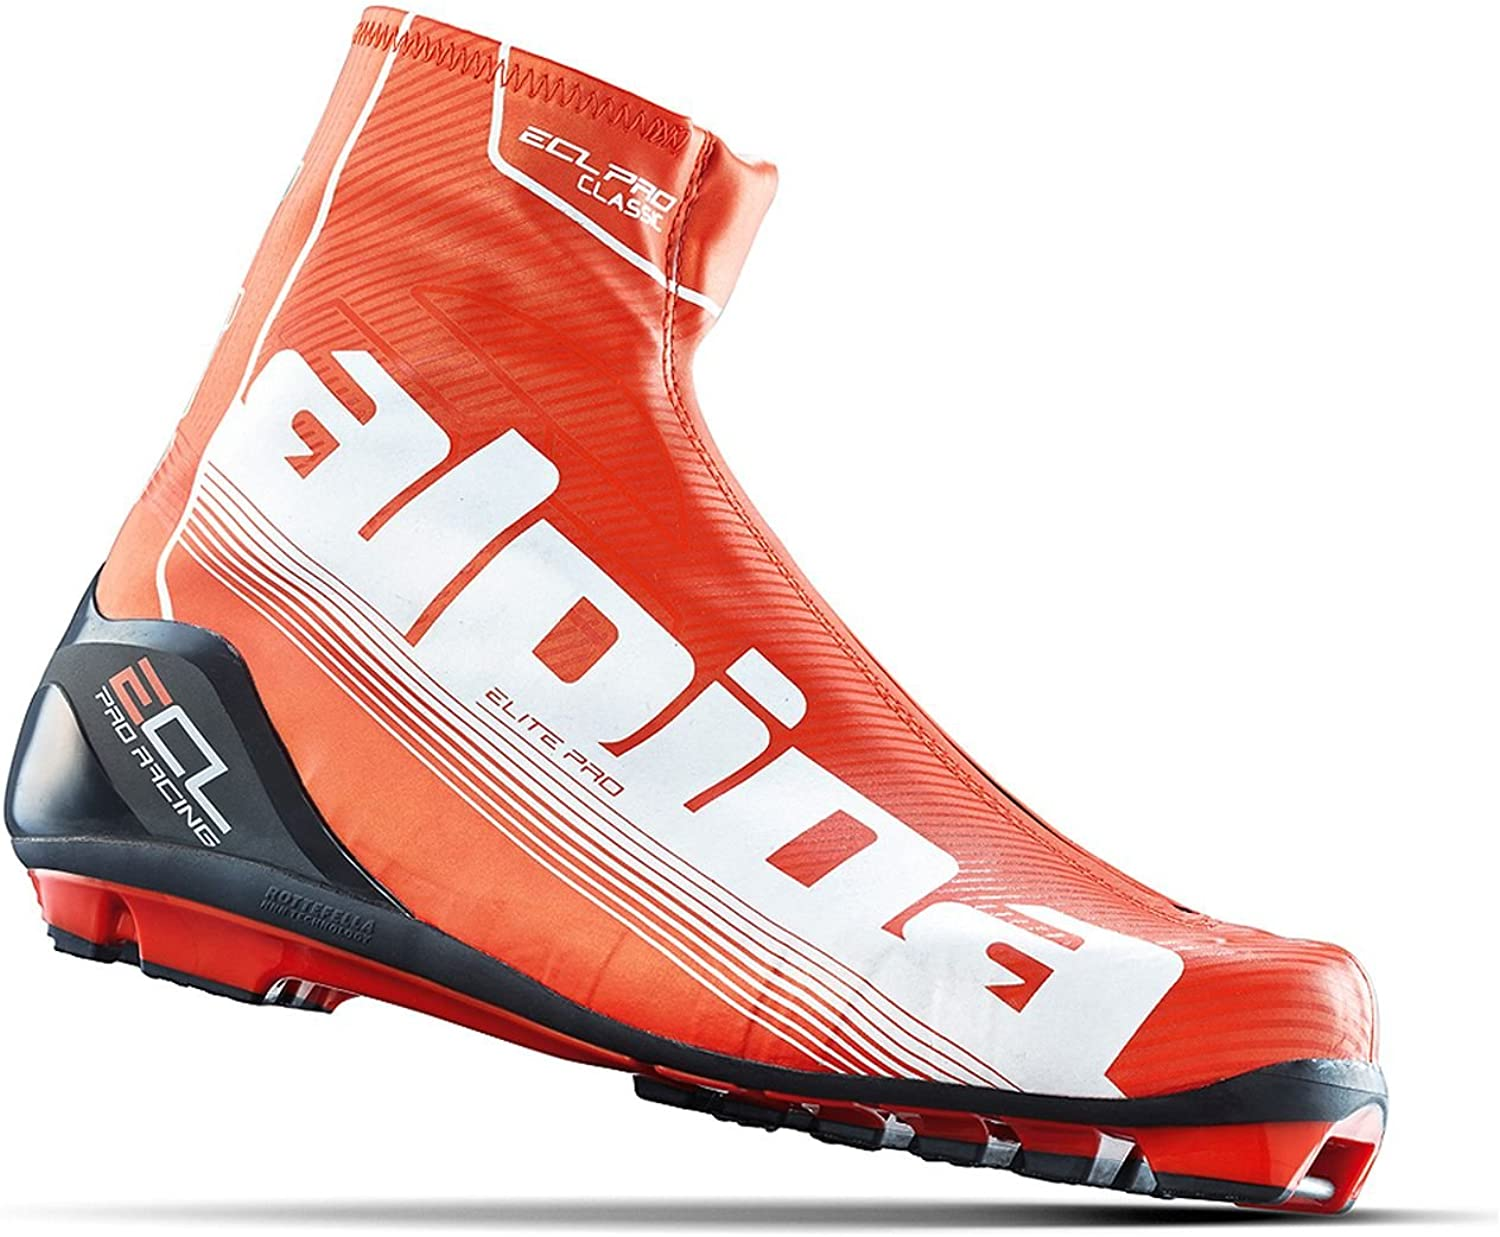 Same day shipping Alpina ECL Pro WC Manufacturer direct delivery Classic Boots